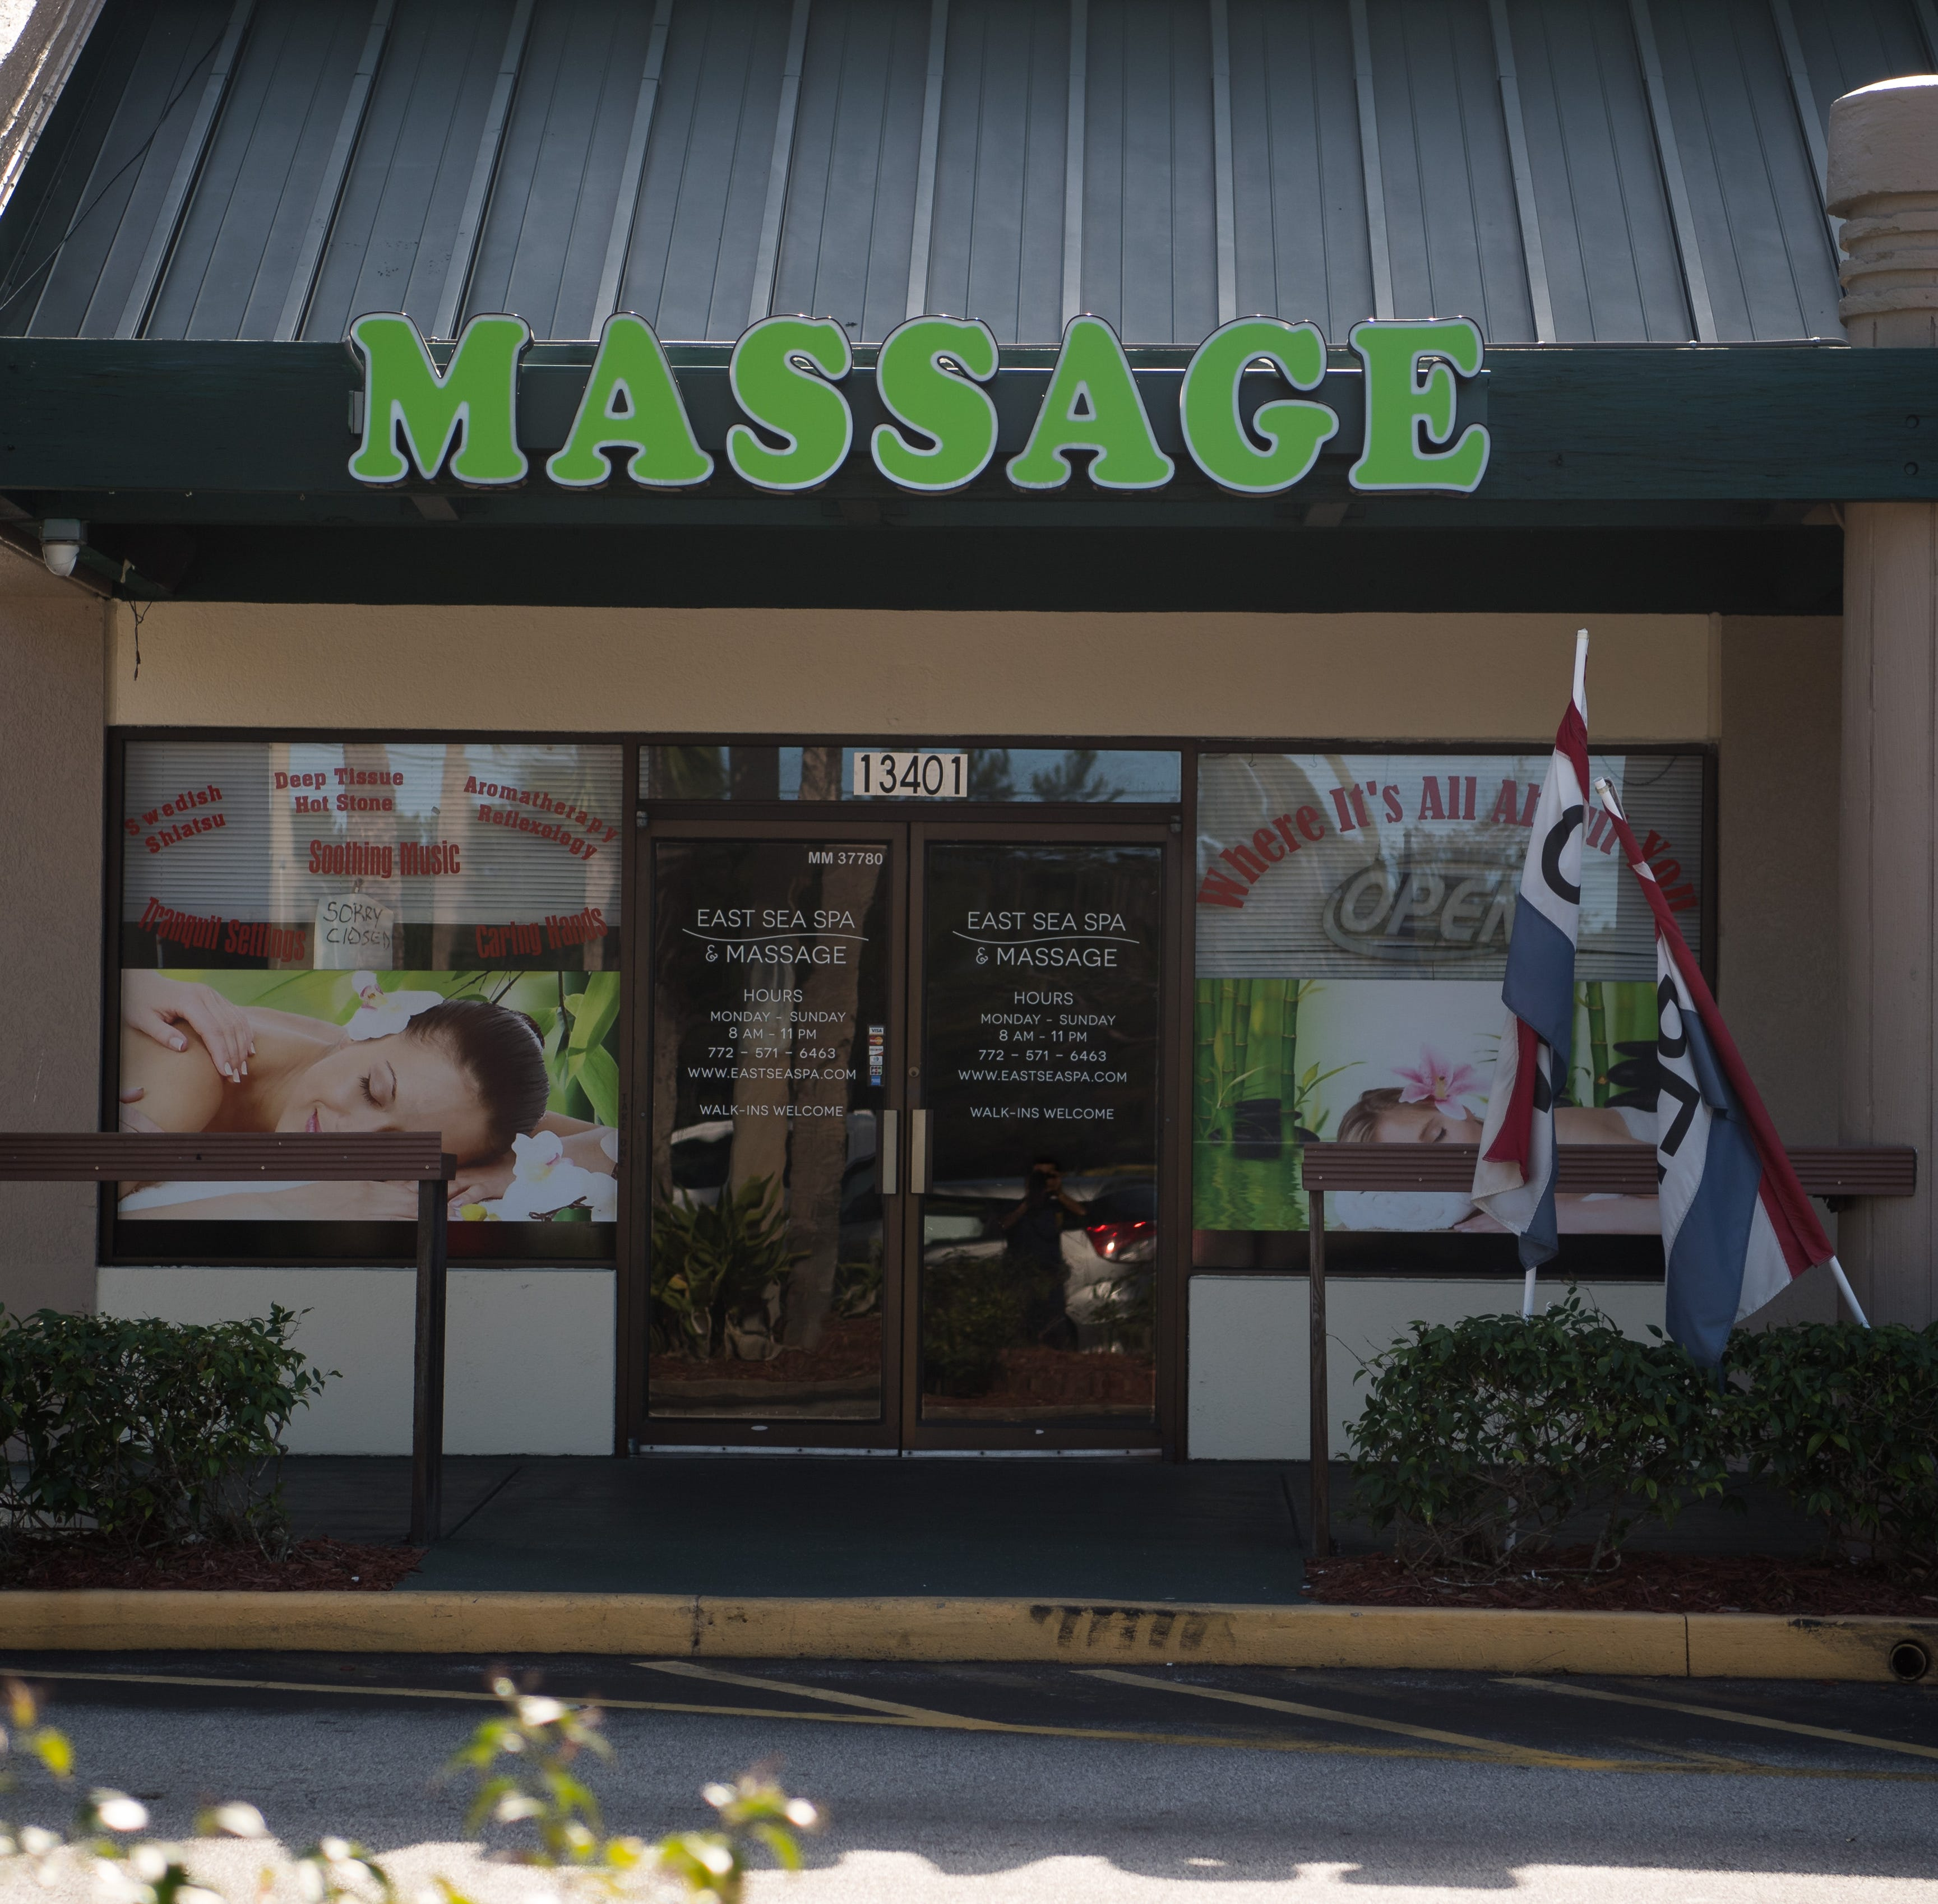 Human trafficking in Florida massage parlors: What happened in Vero Beach and Sebastian?